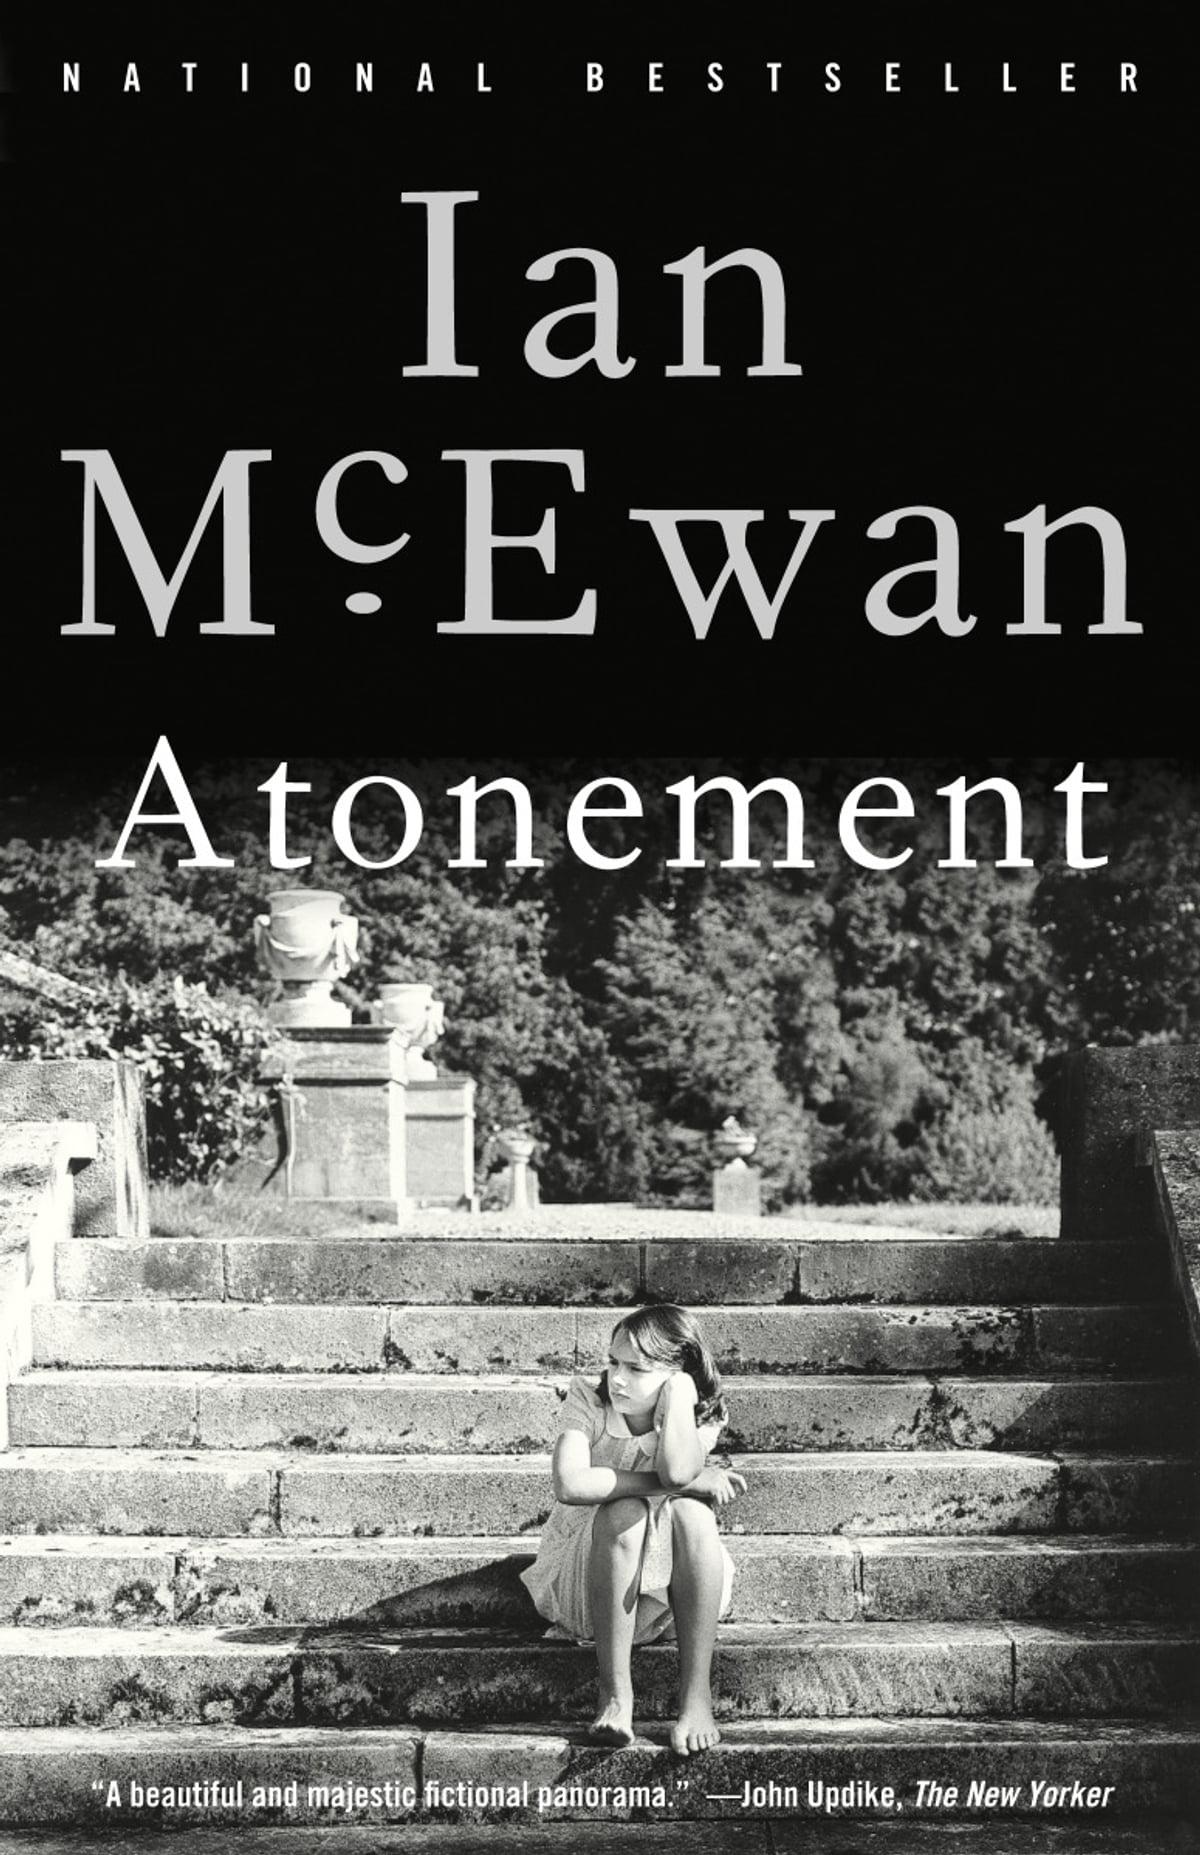 atonement by ian mcewan free ebook download